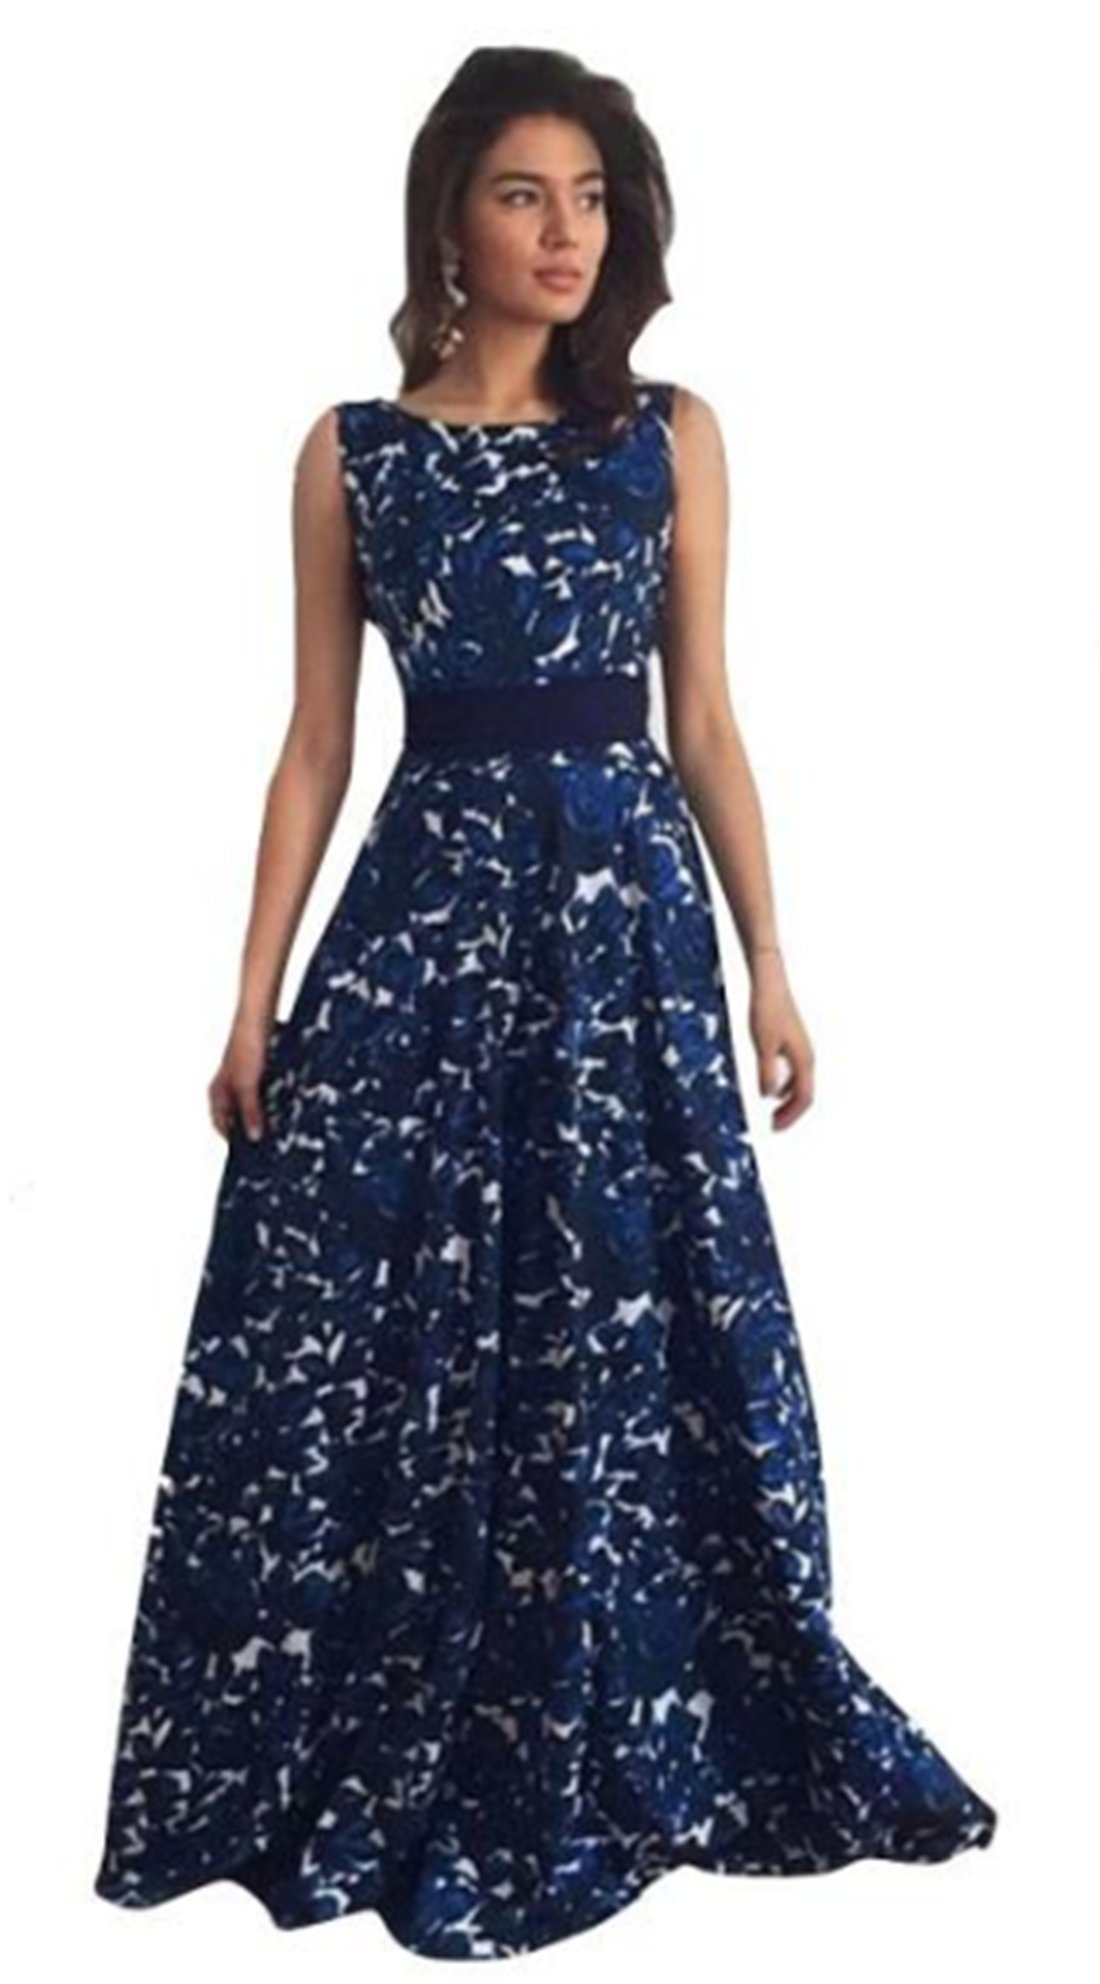 Women Long Dress Daoroka Sexy Vintage Backless Sleeveless Floral Evening Prom Gown Party Skirt Cocktail Casual Sundress (L, Blue)